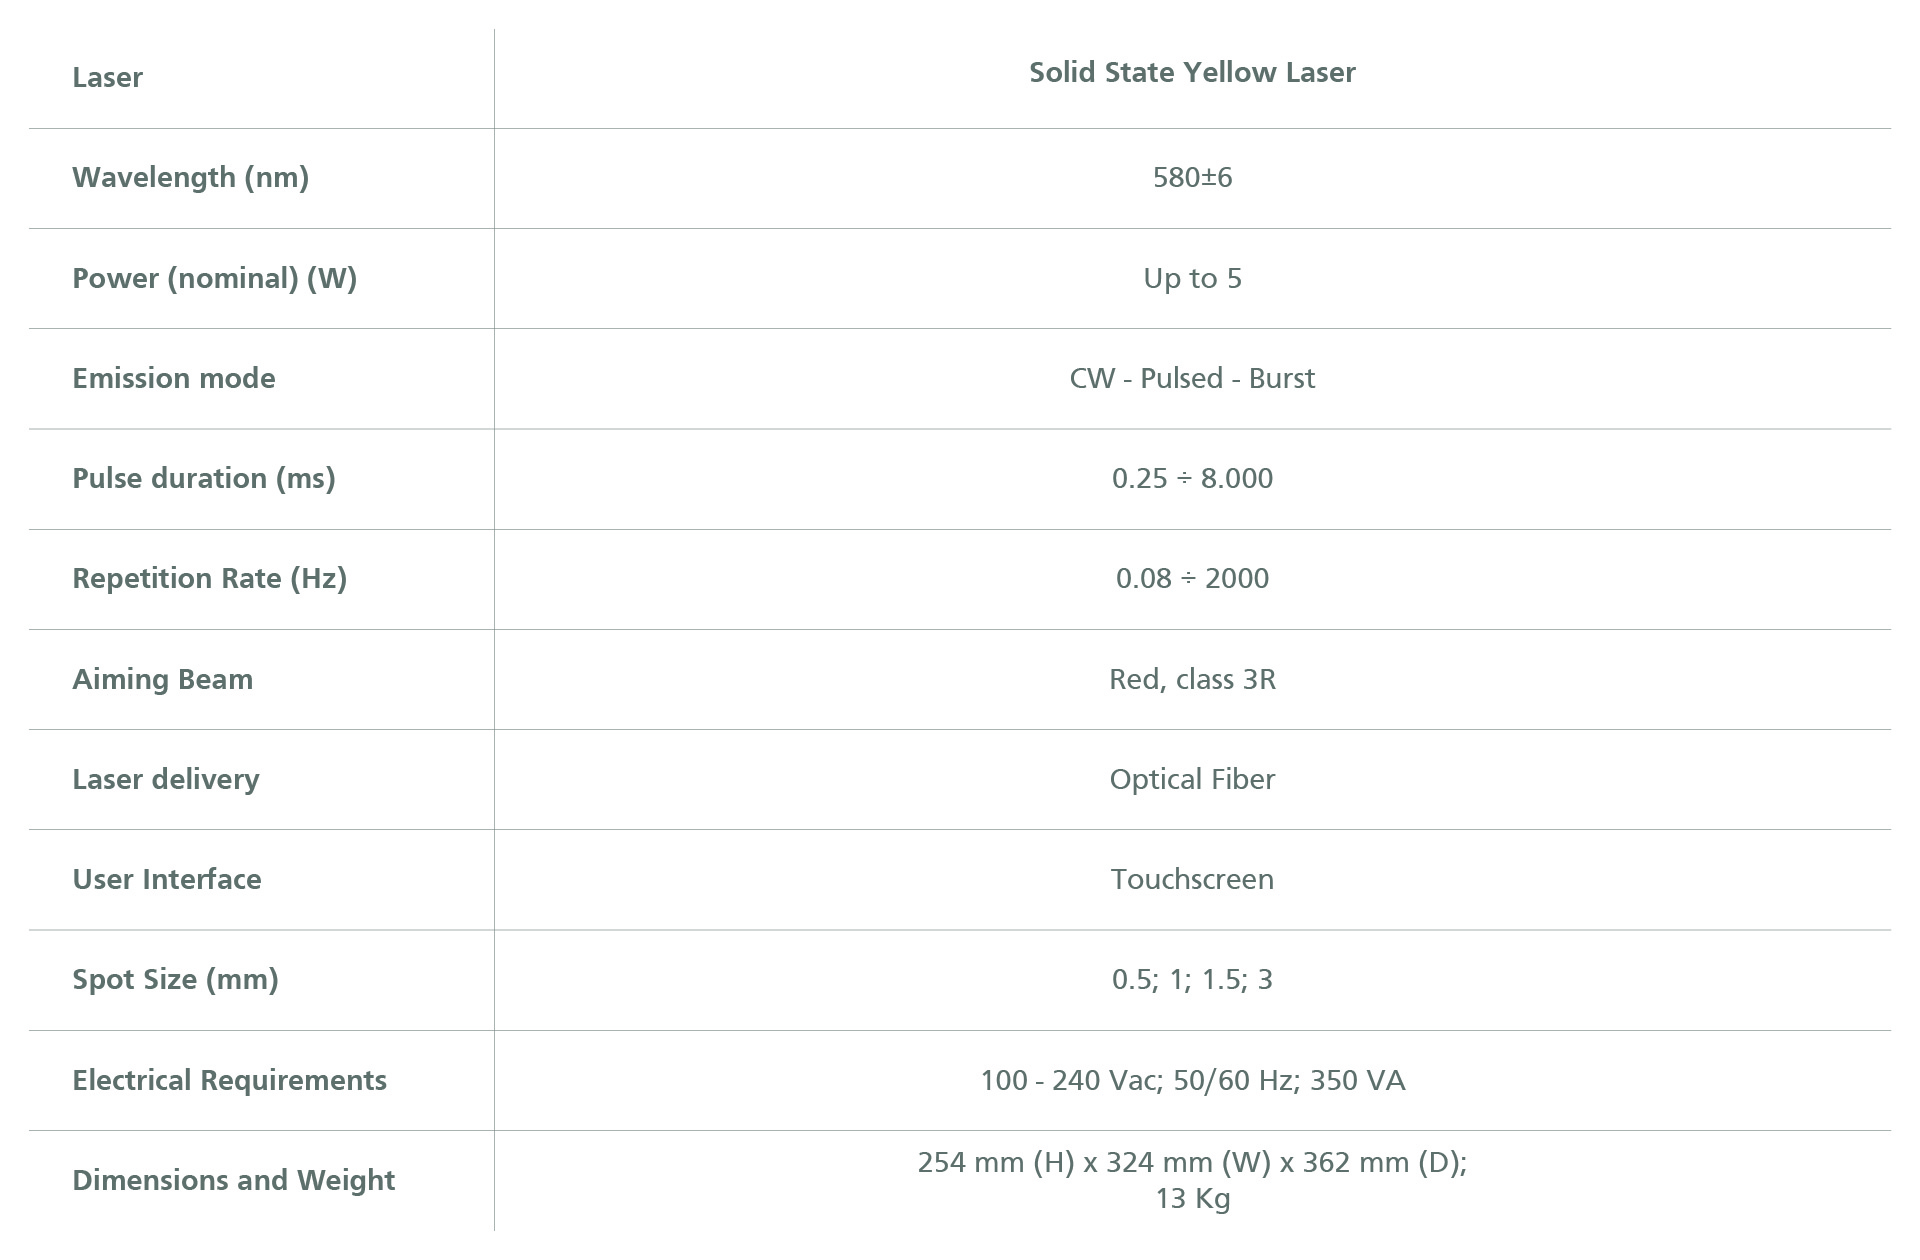 585nm Solid-State Laser Technical Specifications